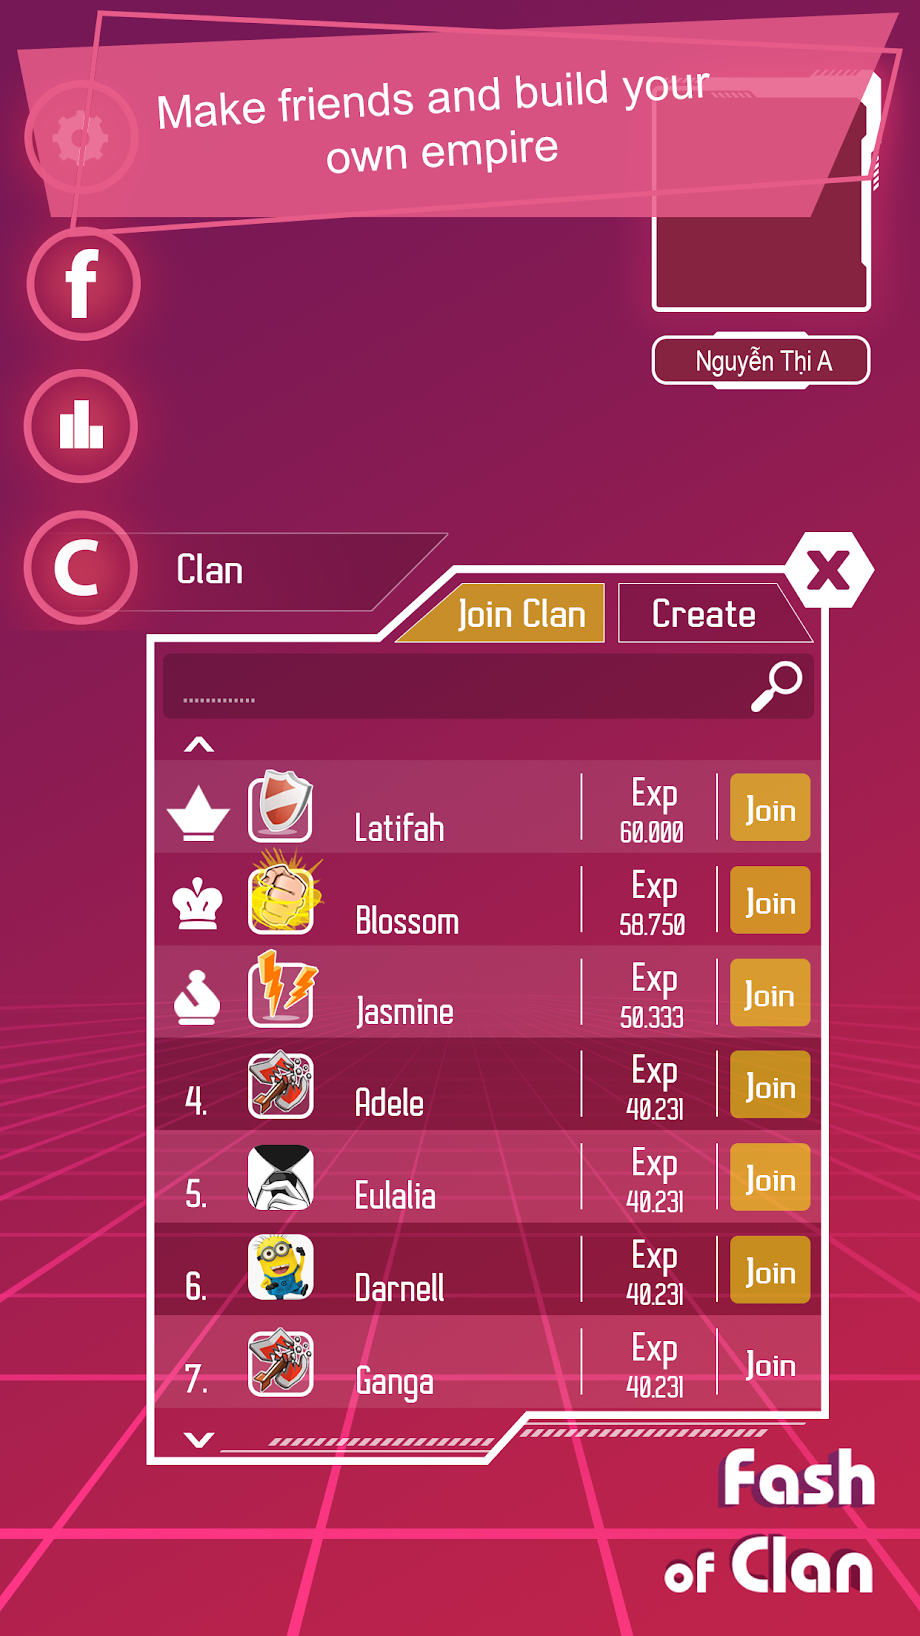 Fast of Clan